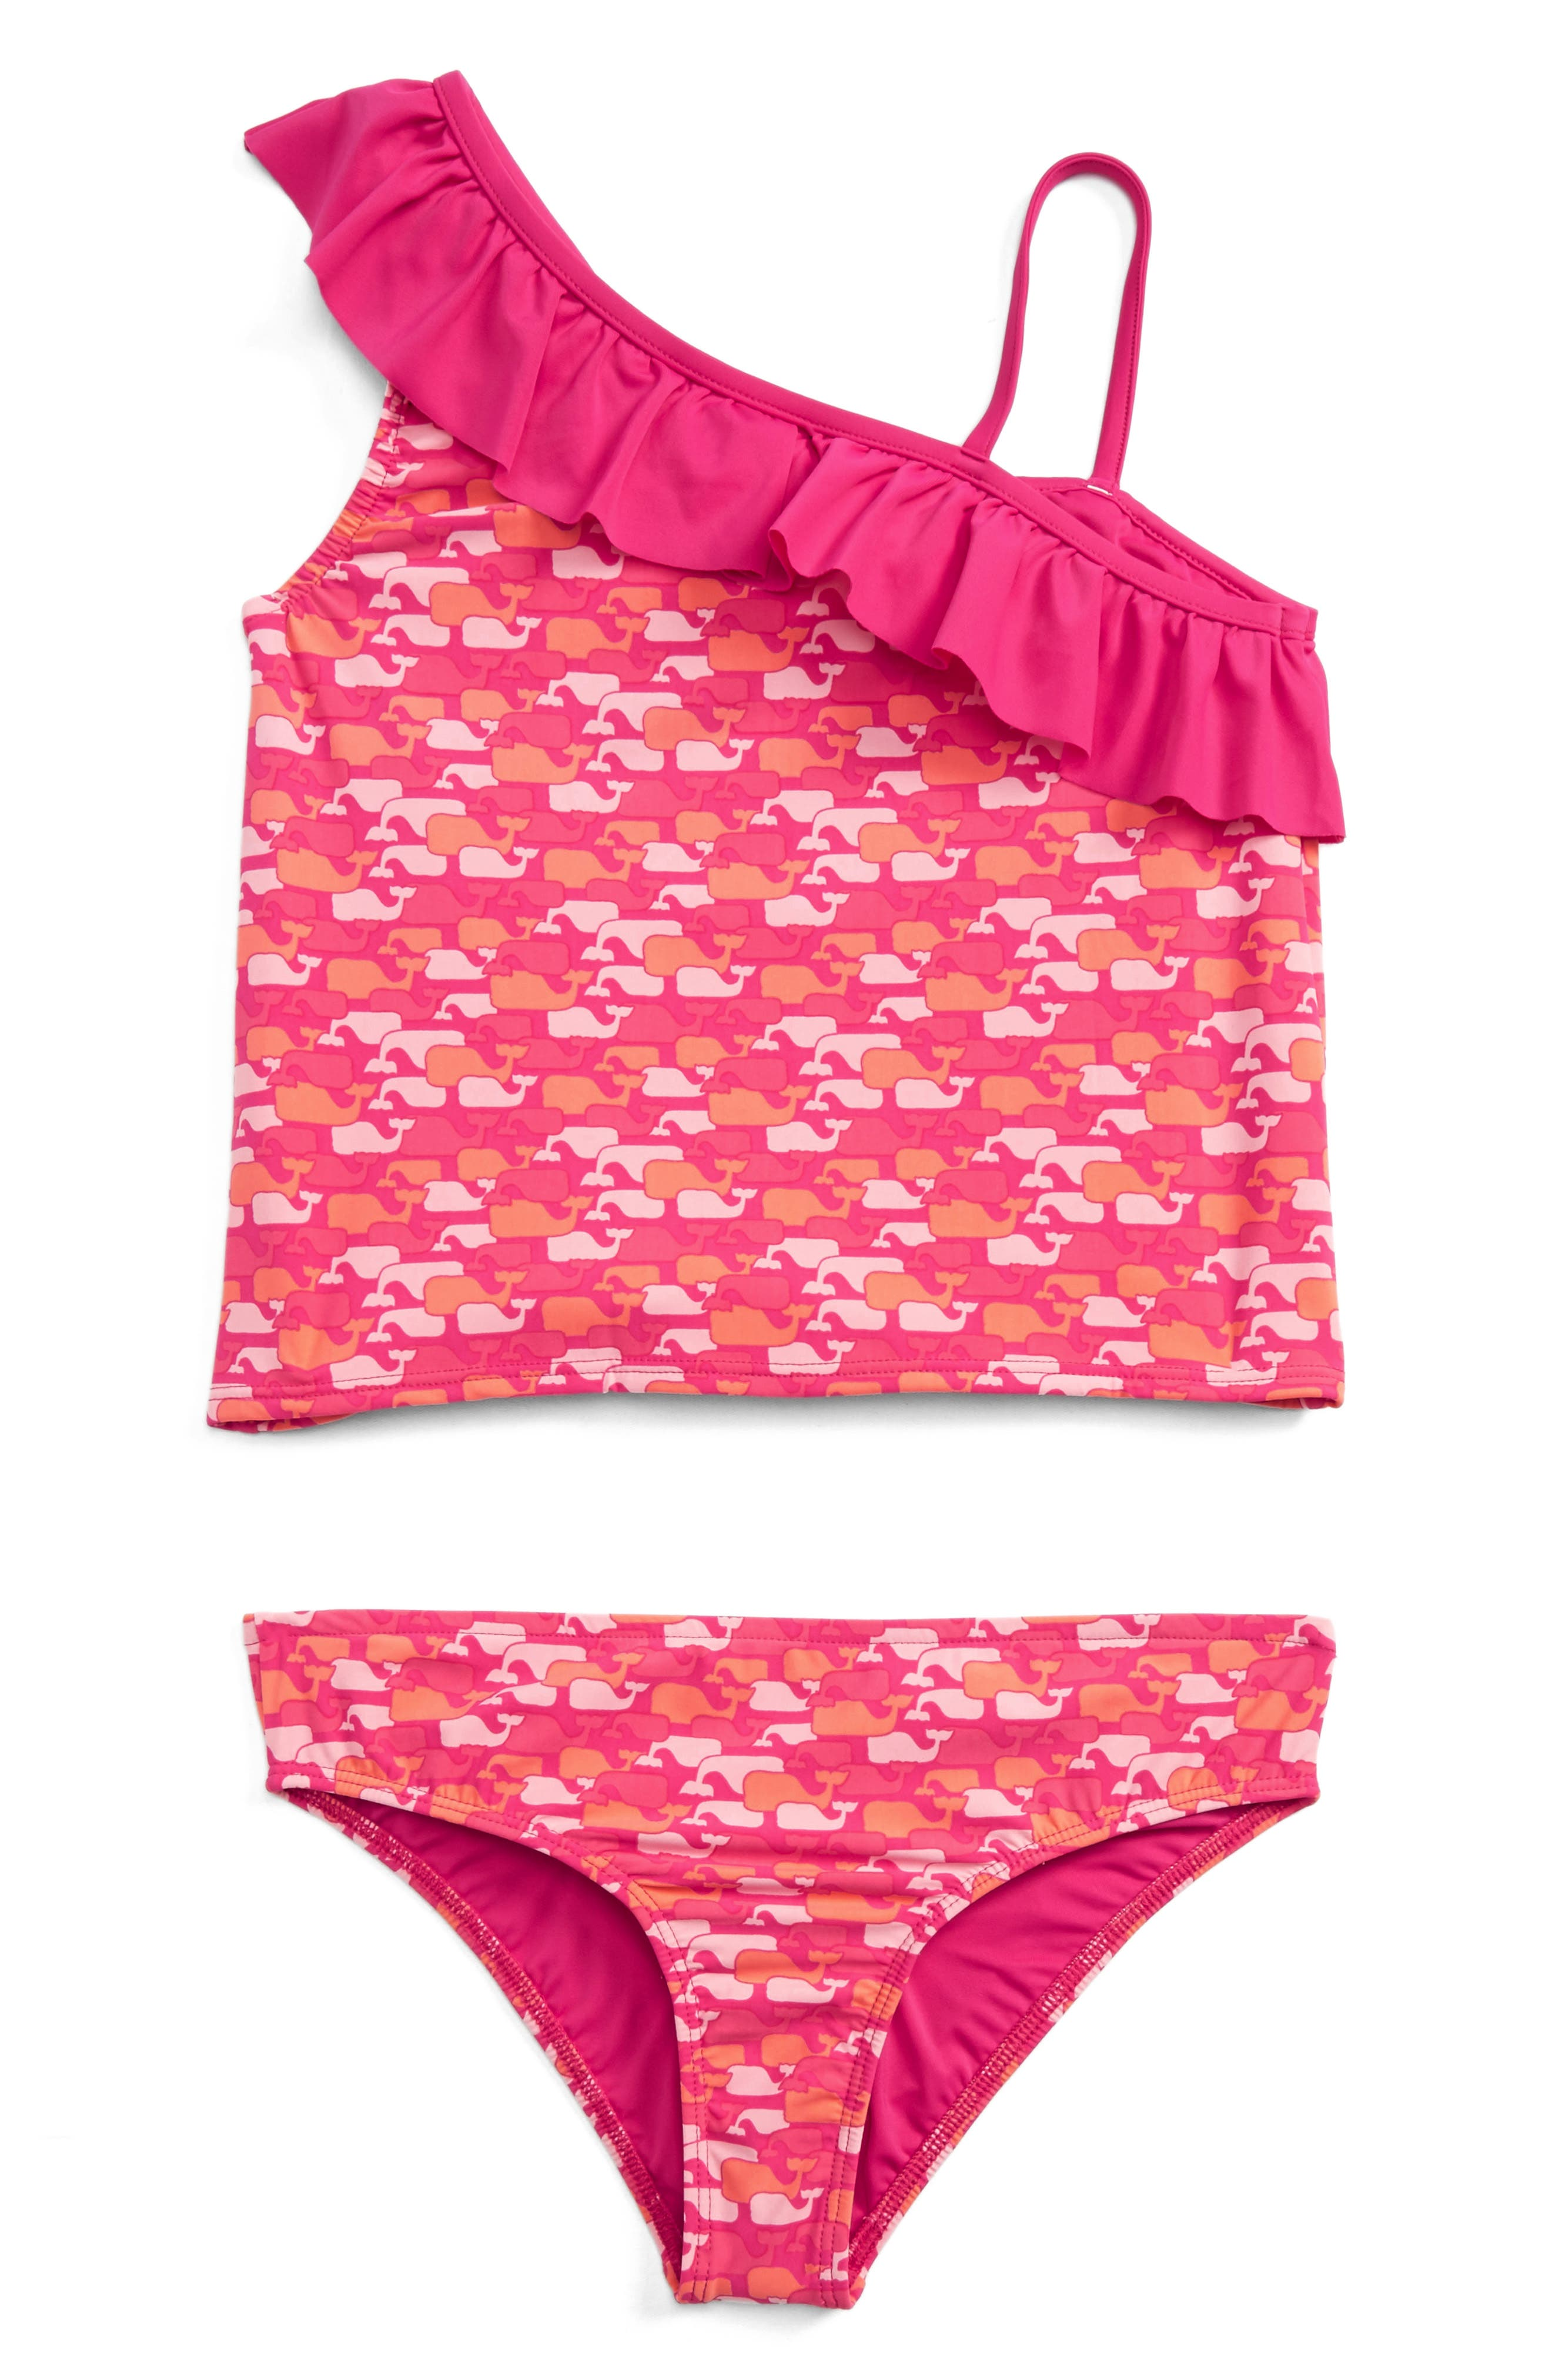 Alternate Image 1 Selected - vineyard vines Whale Outline Two-Piece Tankini Swimsuit (Toddler Girls, Little Girls & Big Girls)